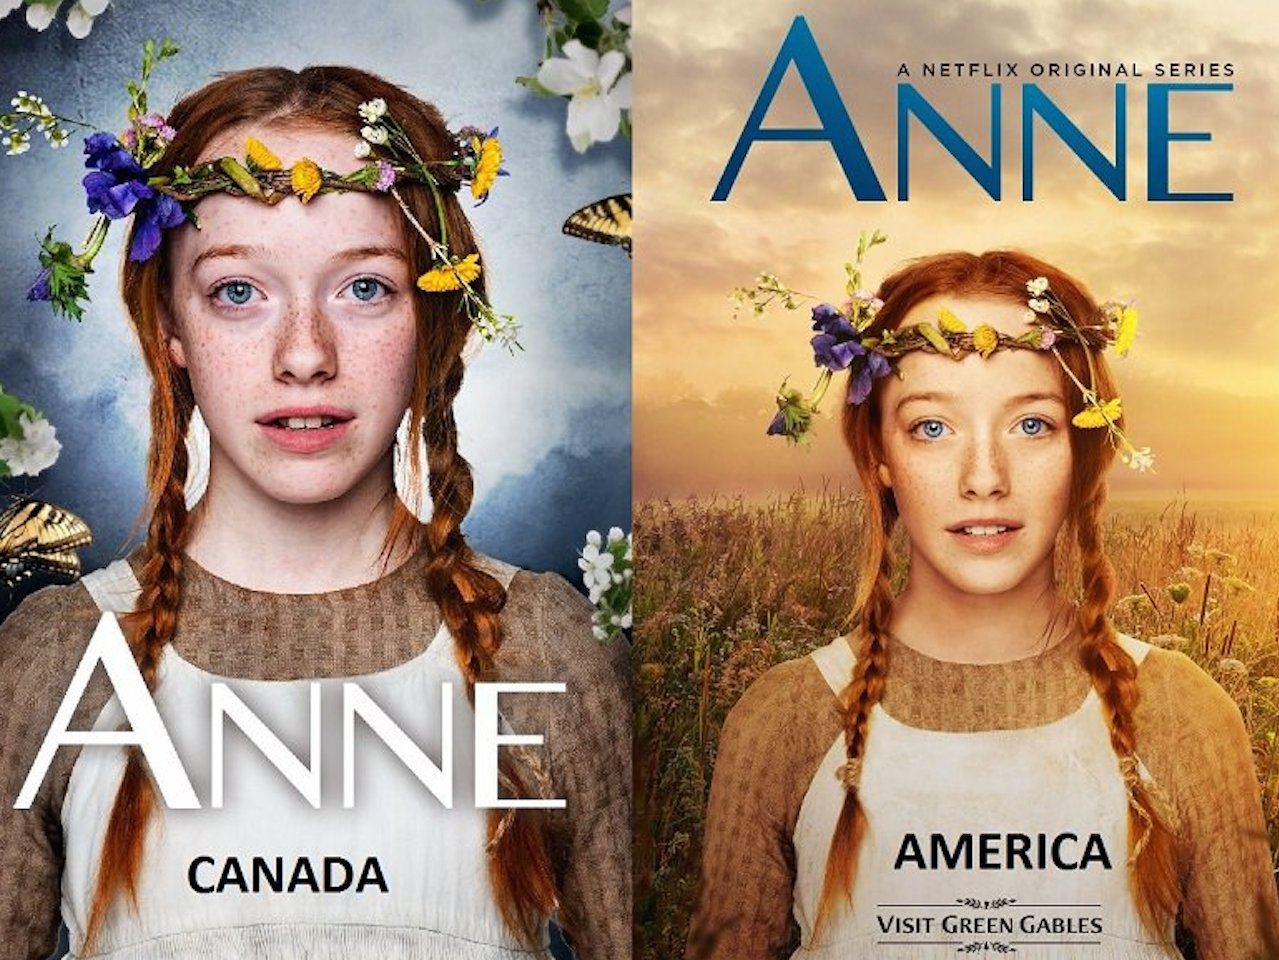 'Don't Photoshop our Anne'! Canadians react to American promo posters